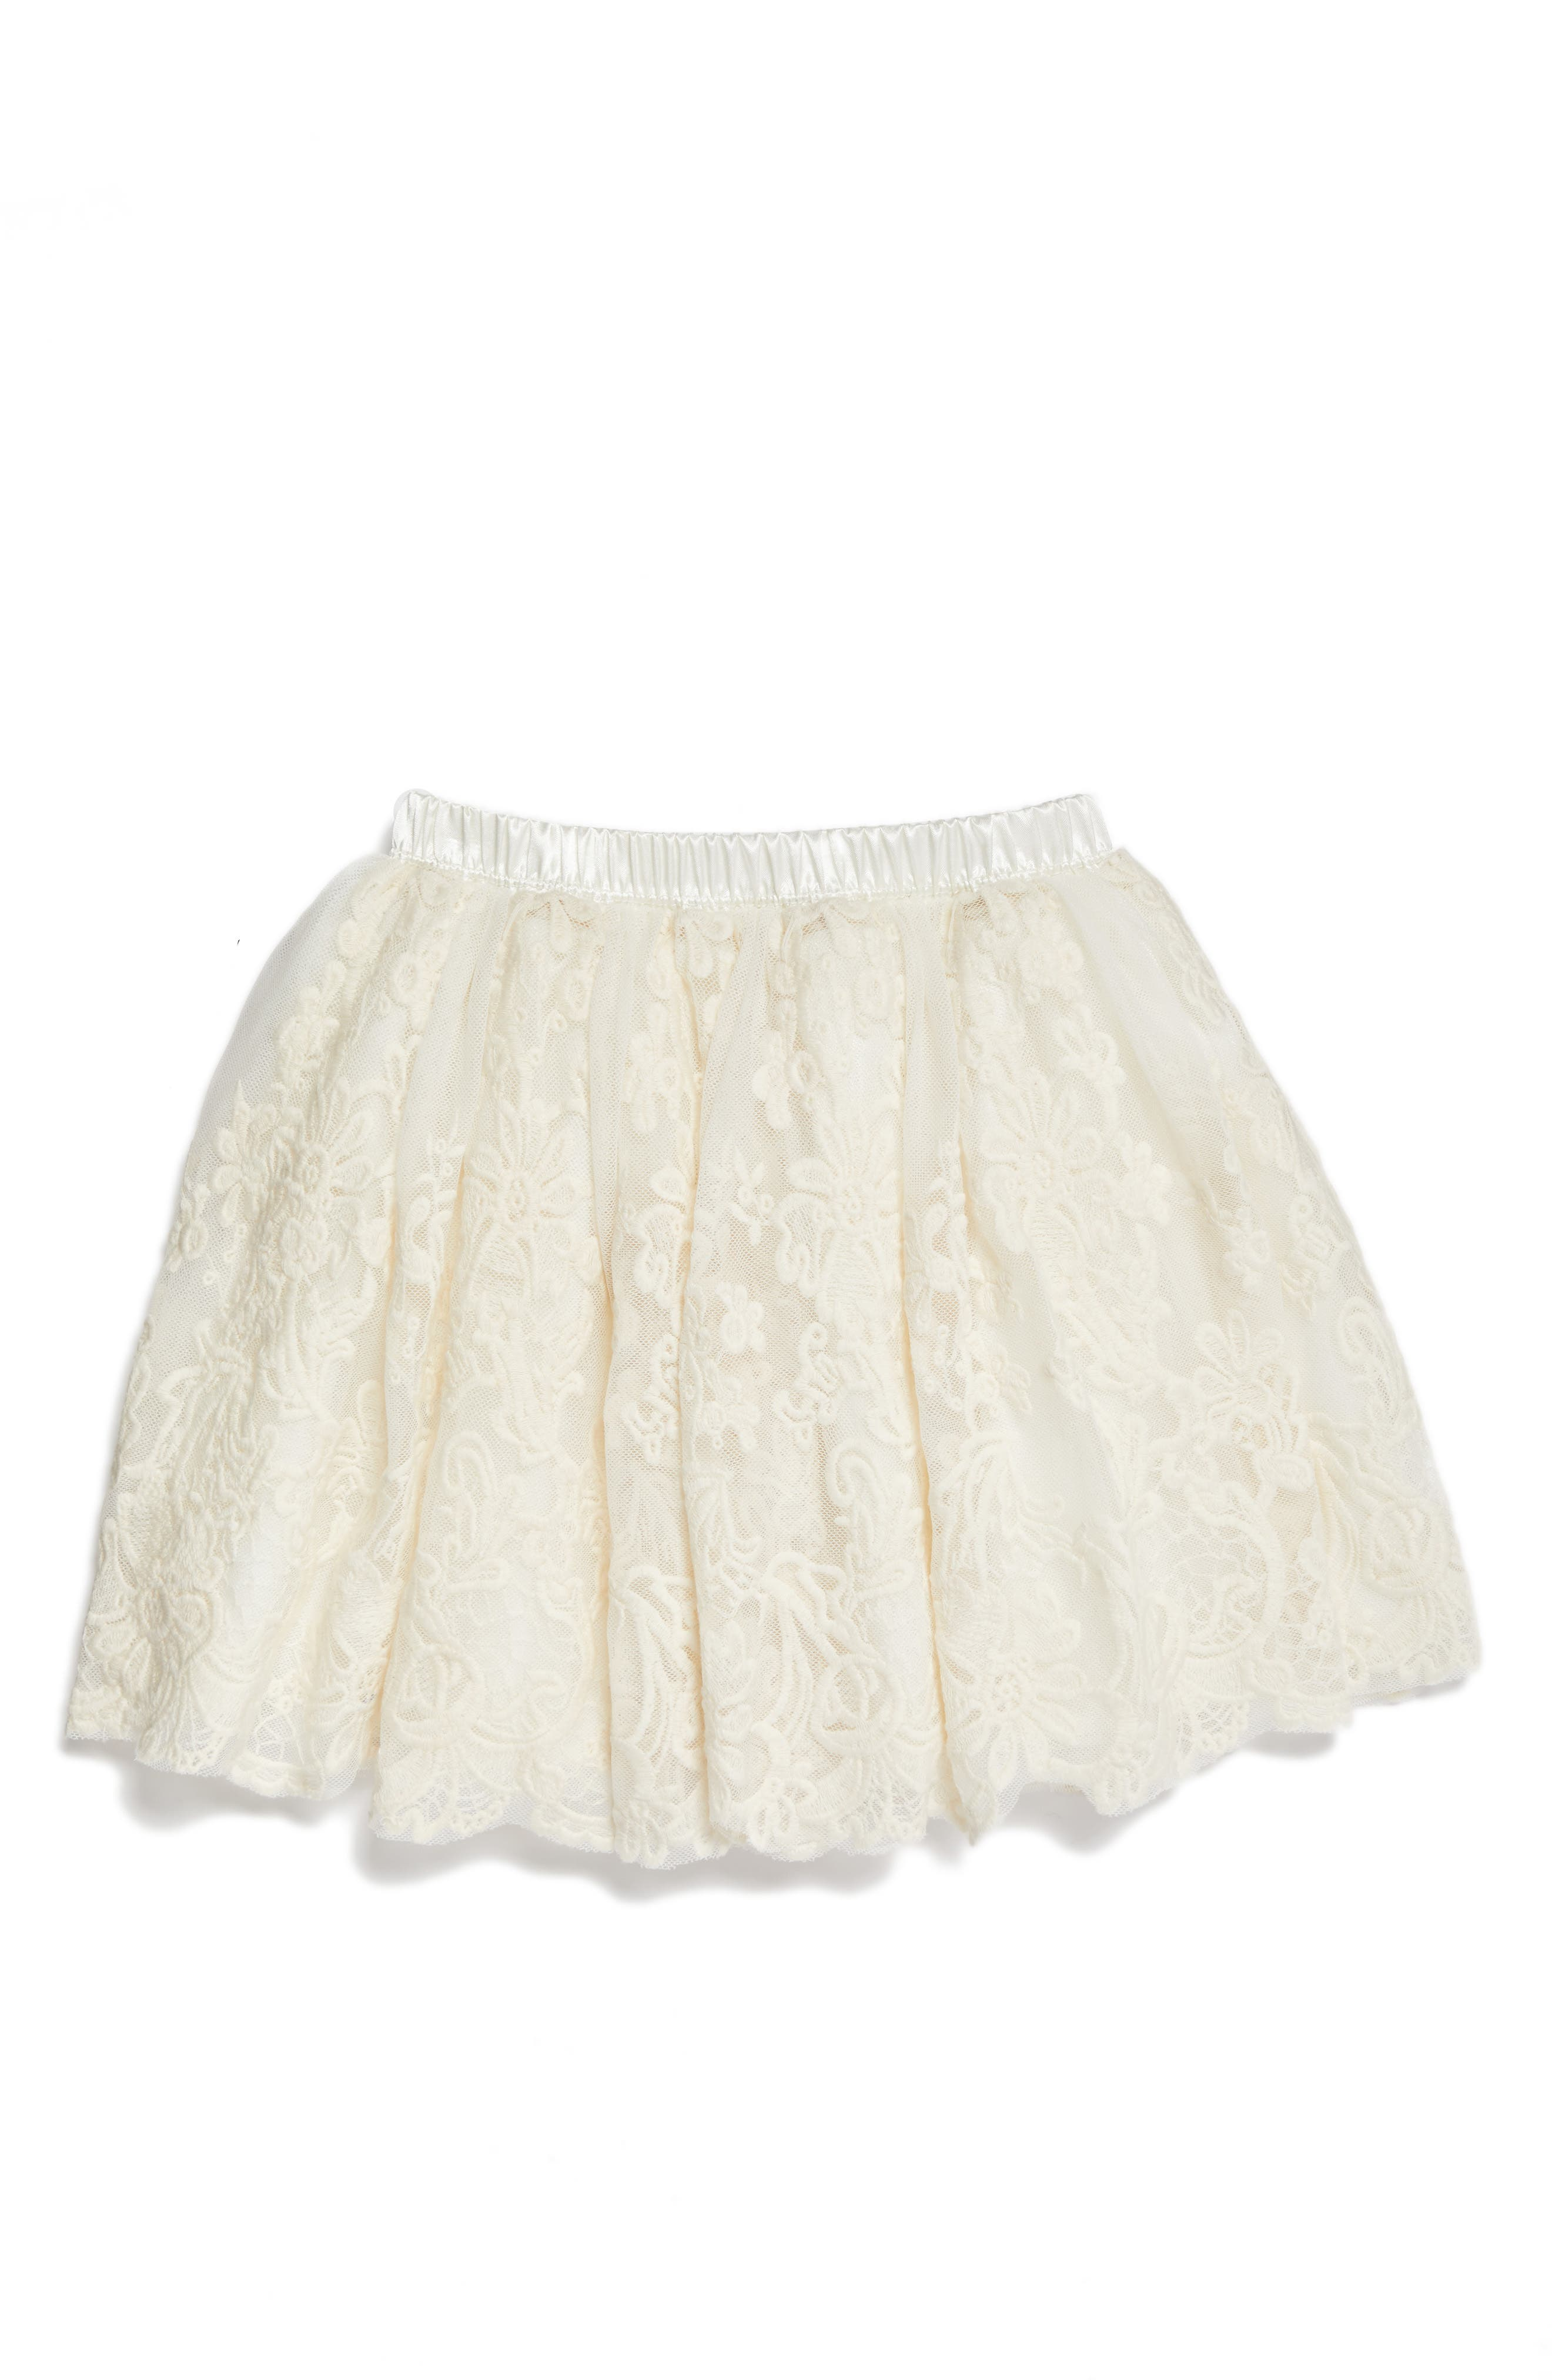 Lace Tutu Skirt,                         Main,                         color, IVORY